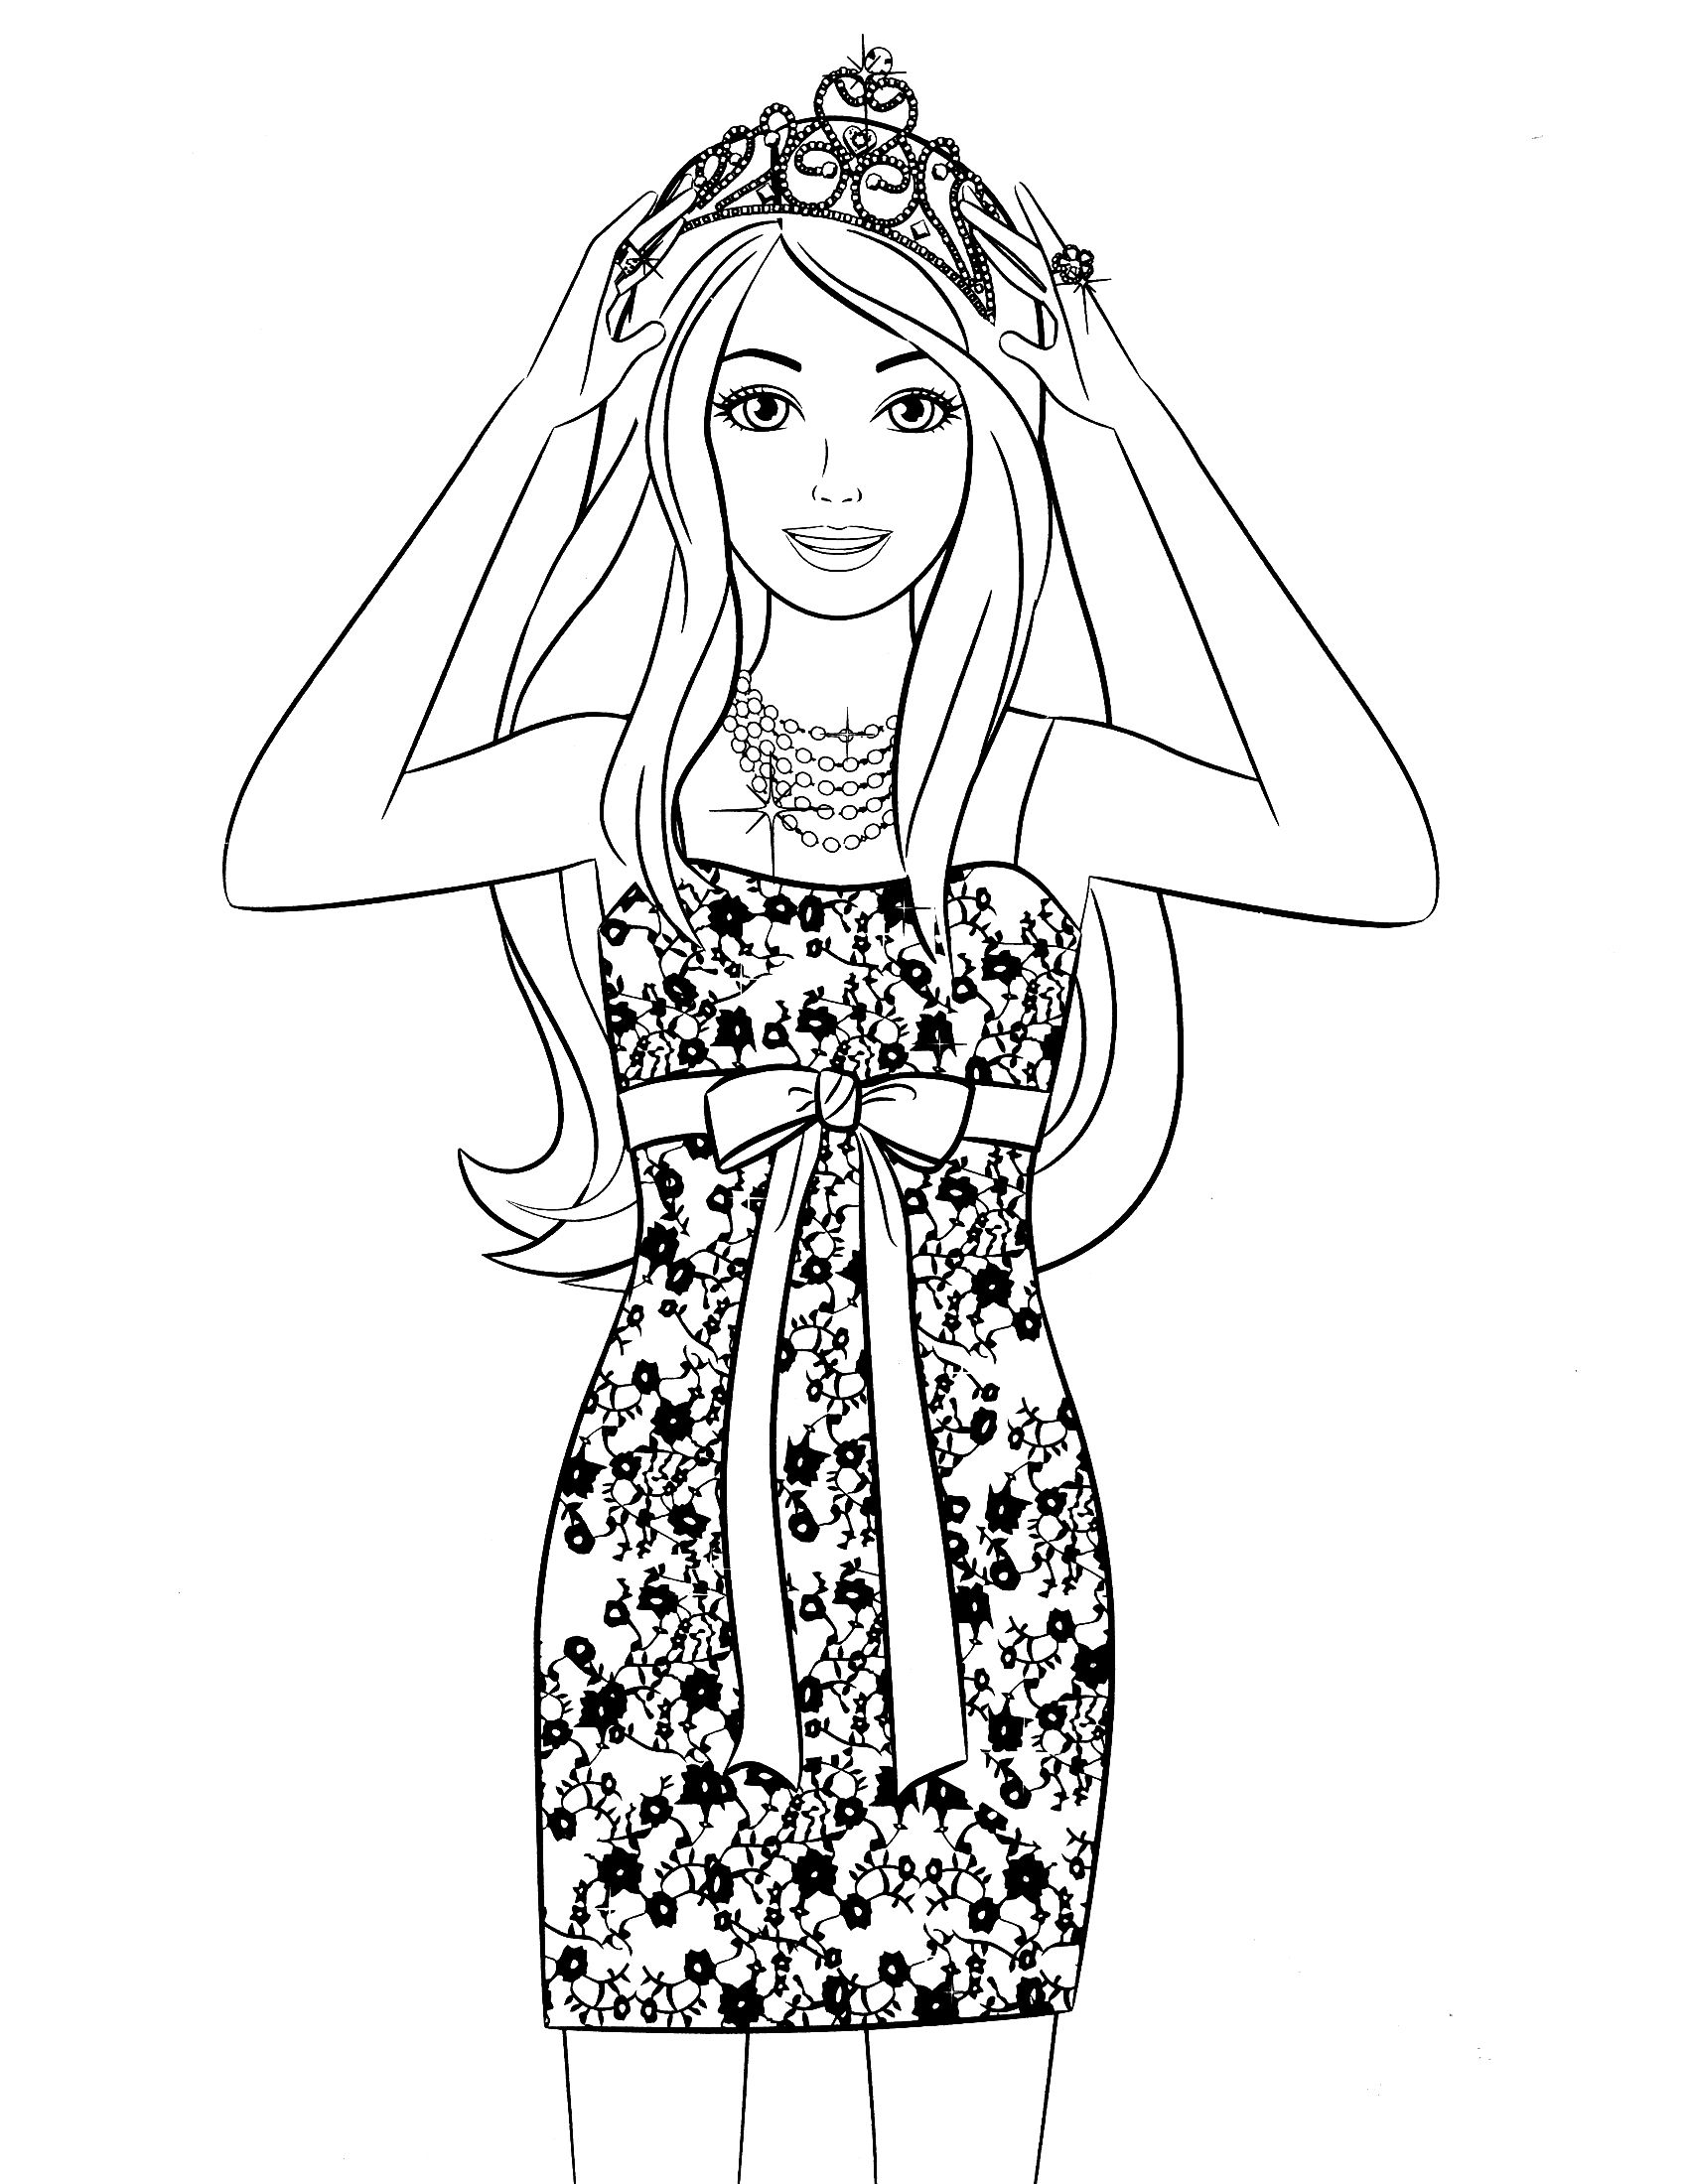 Ausmalbilder Geburtstag Mädchen : Barbie Coloring Pages For Girls Barbie Coloring Page 89 About